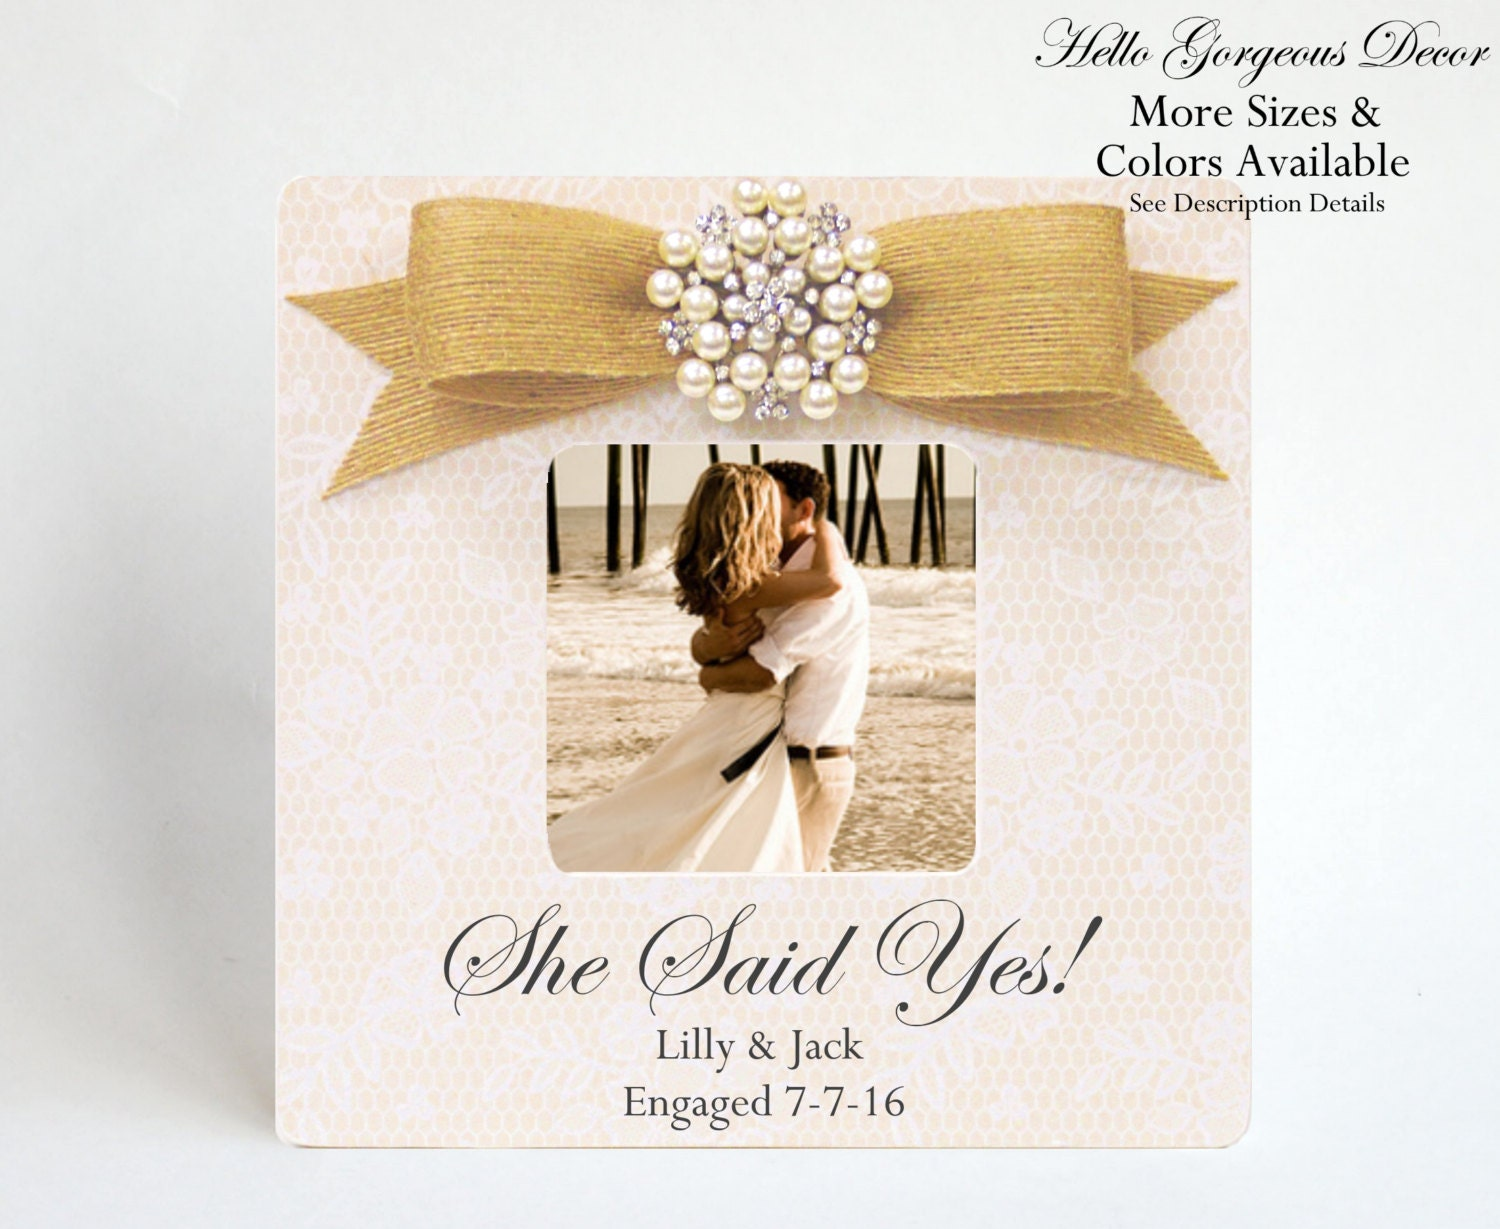 Wedding Shower Gifts For Her: Engagement Gift She Said Yes Picture Frame Personalized